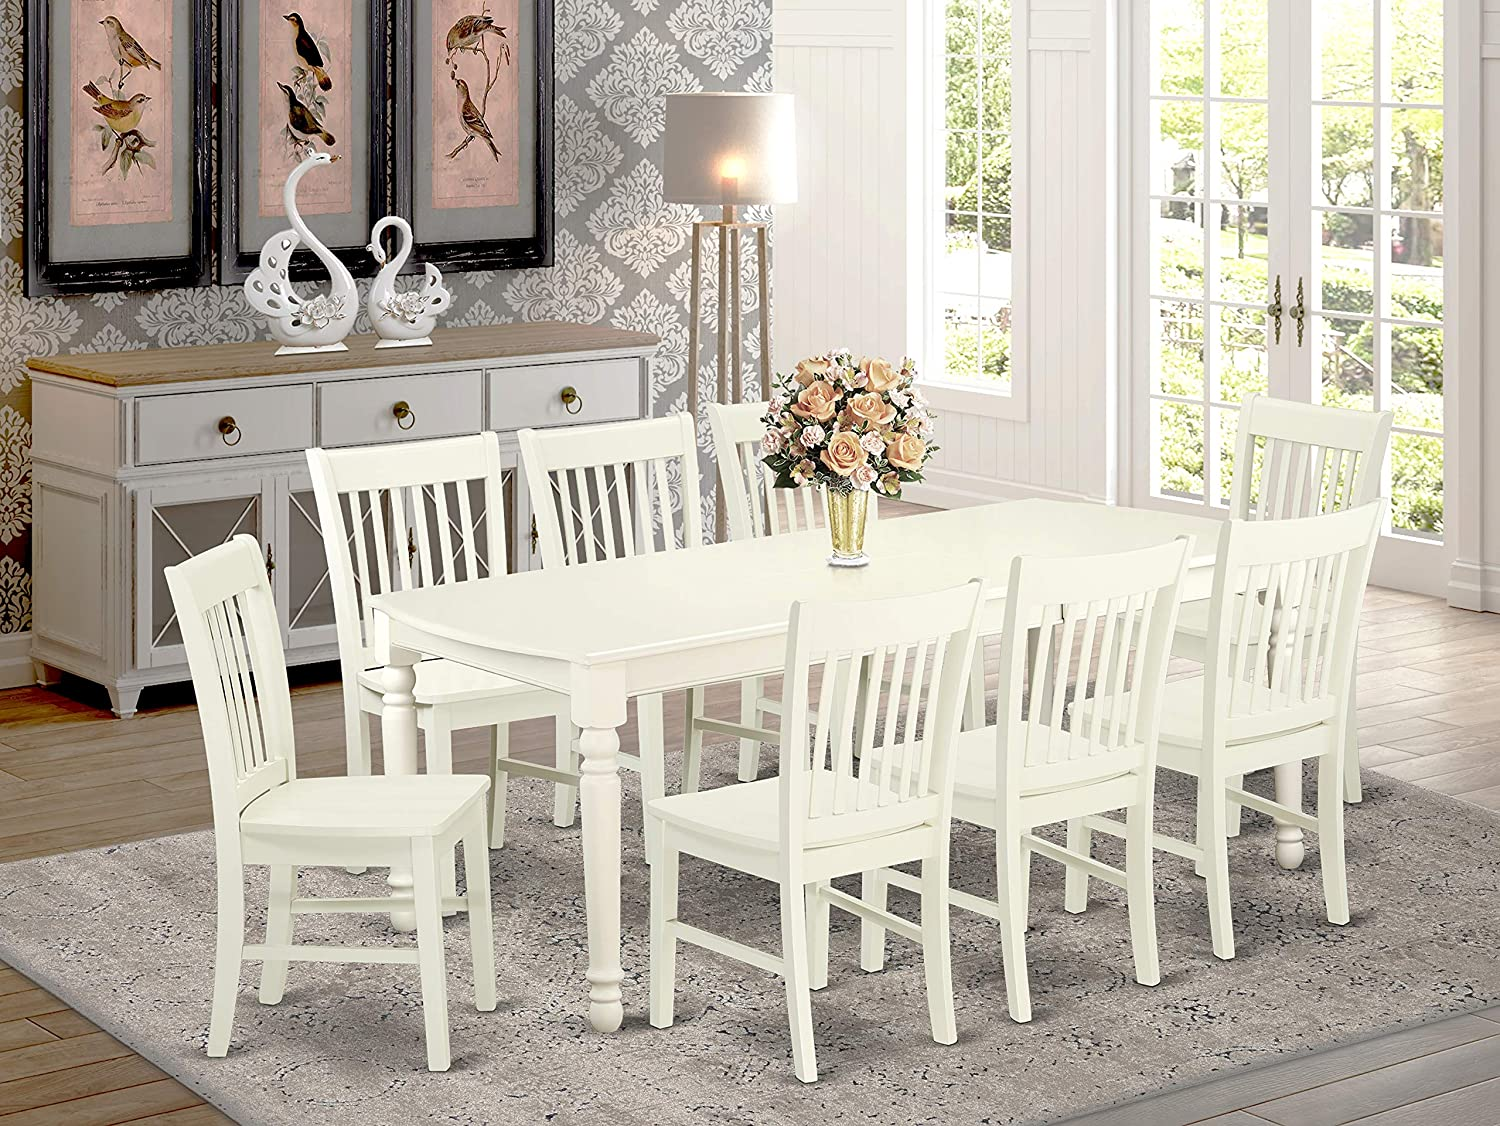 Amazon Com 9 Pc Kitchen Tables And Chair Set With One Dover Dining Table And 8 Kitchen Chairs In A Linen White Finish Furniture Decor